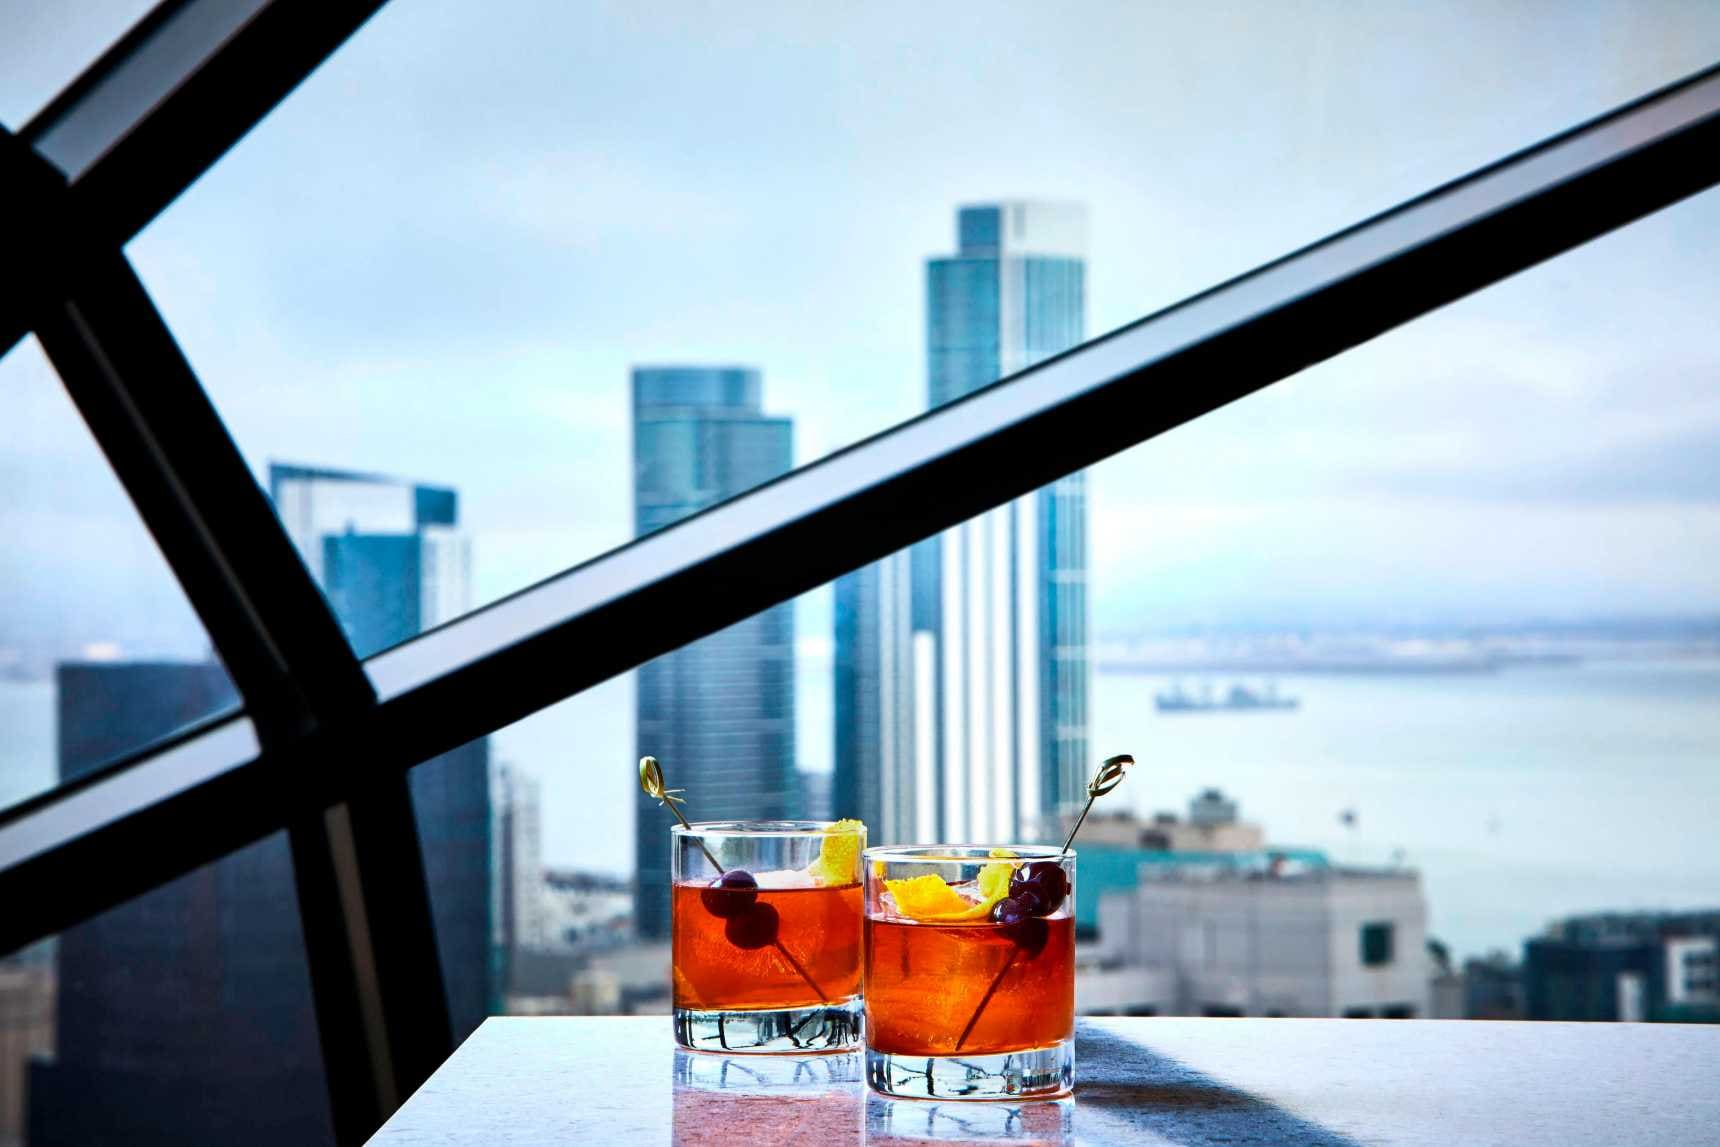 Cocktails in front of  window view of city